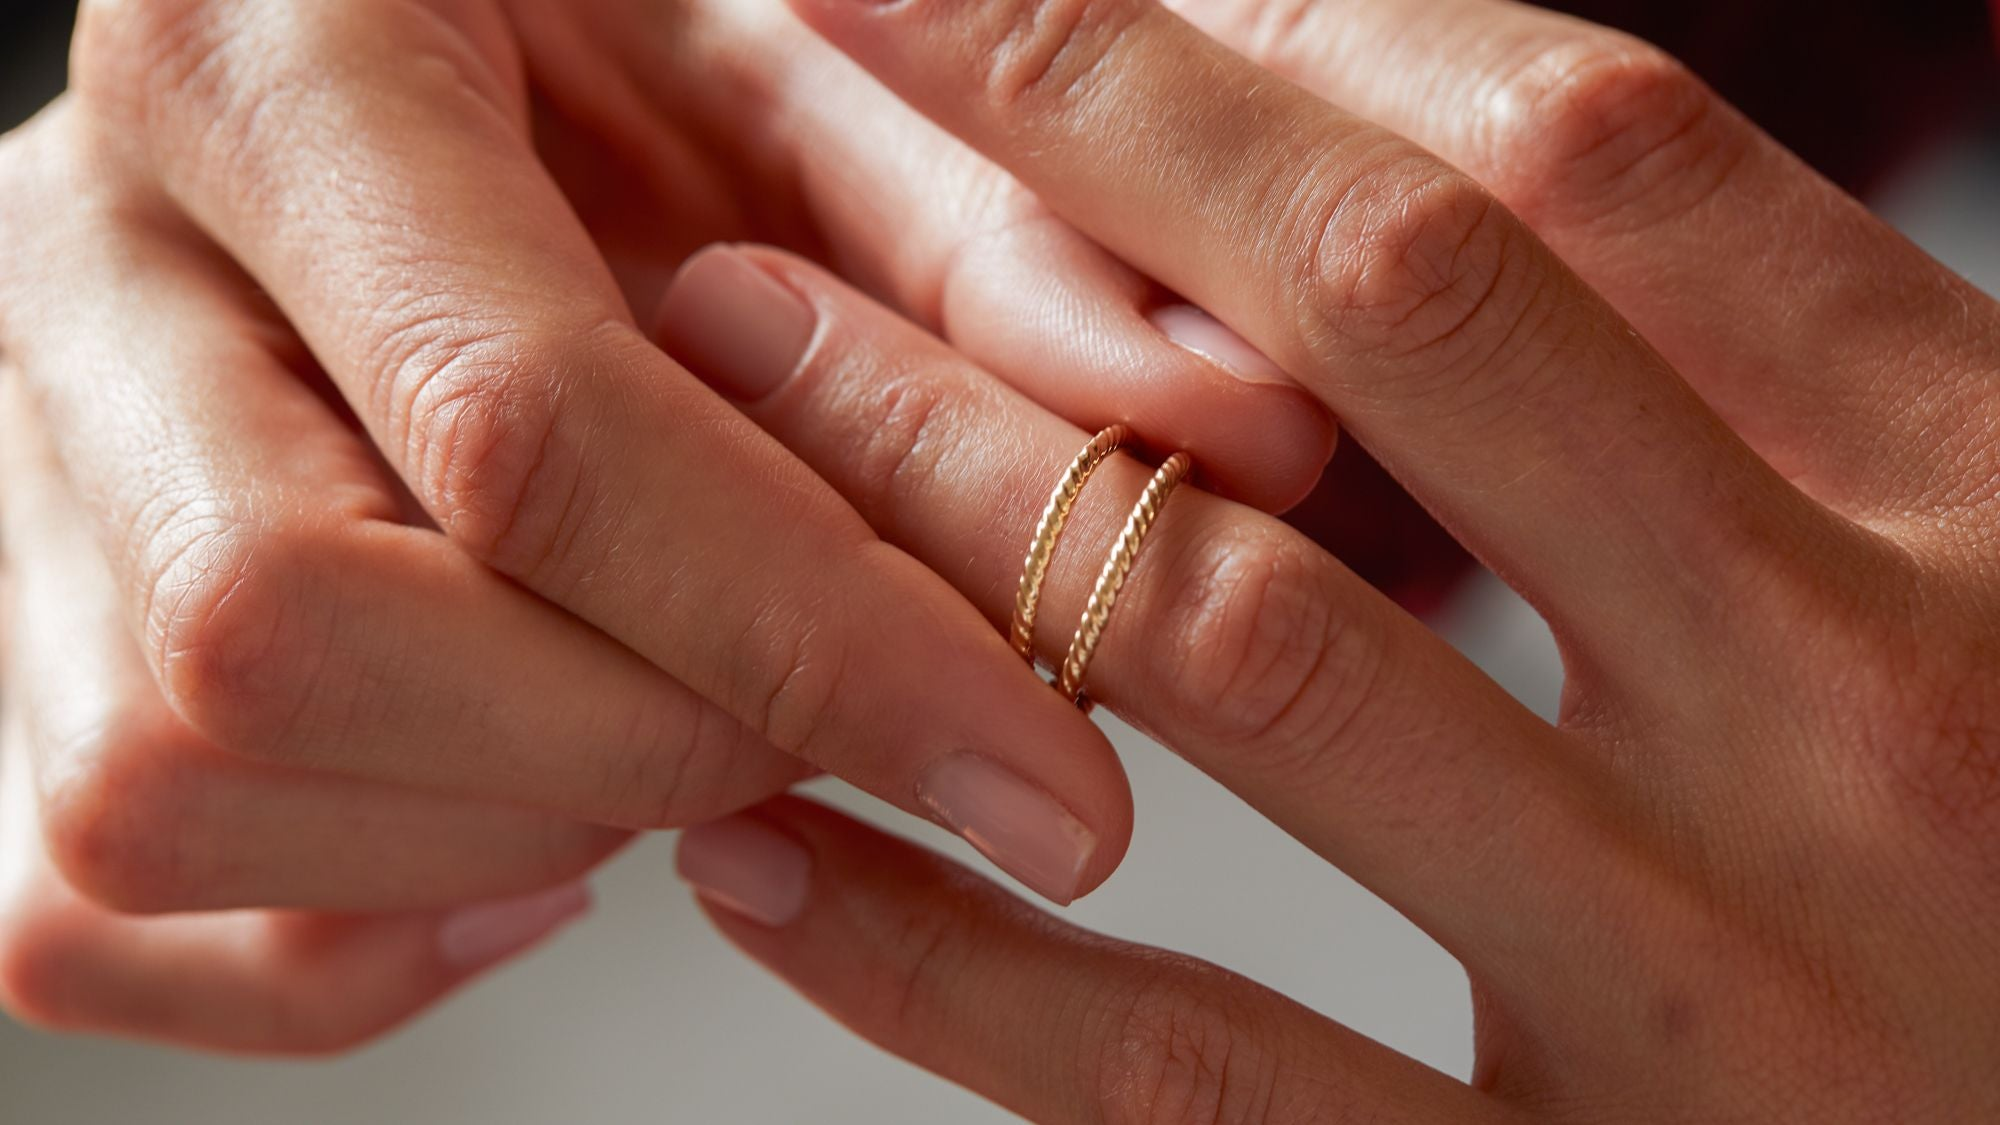 How to Measure Your Ring Size at Home